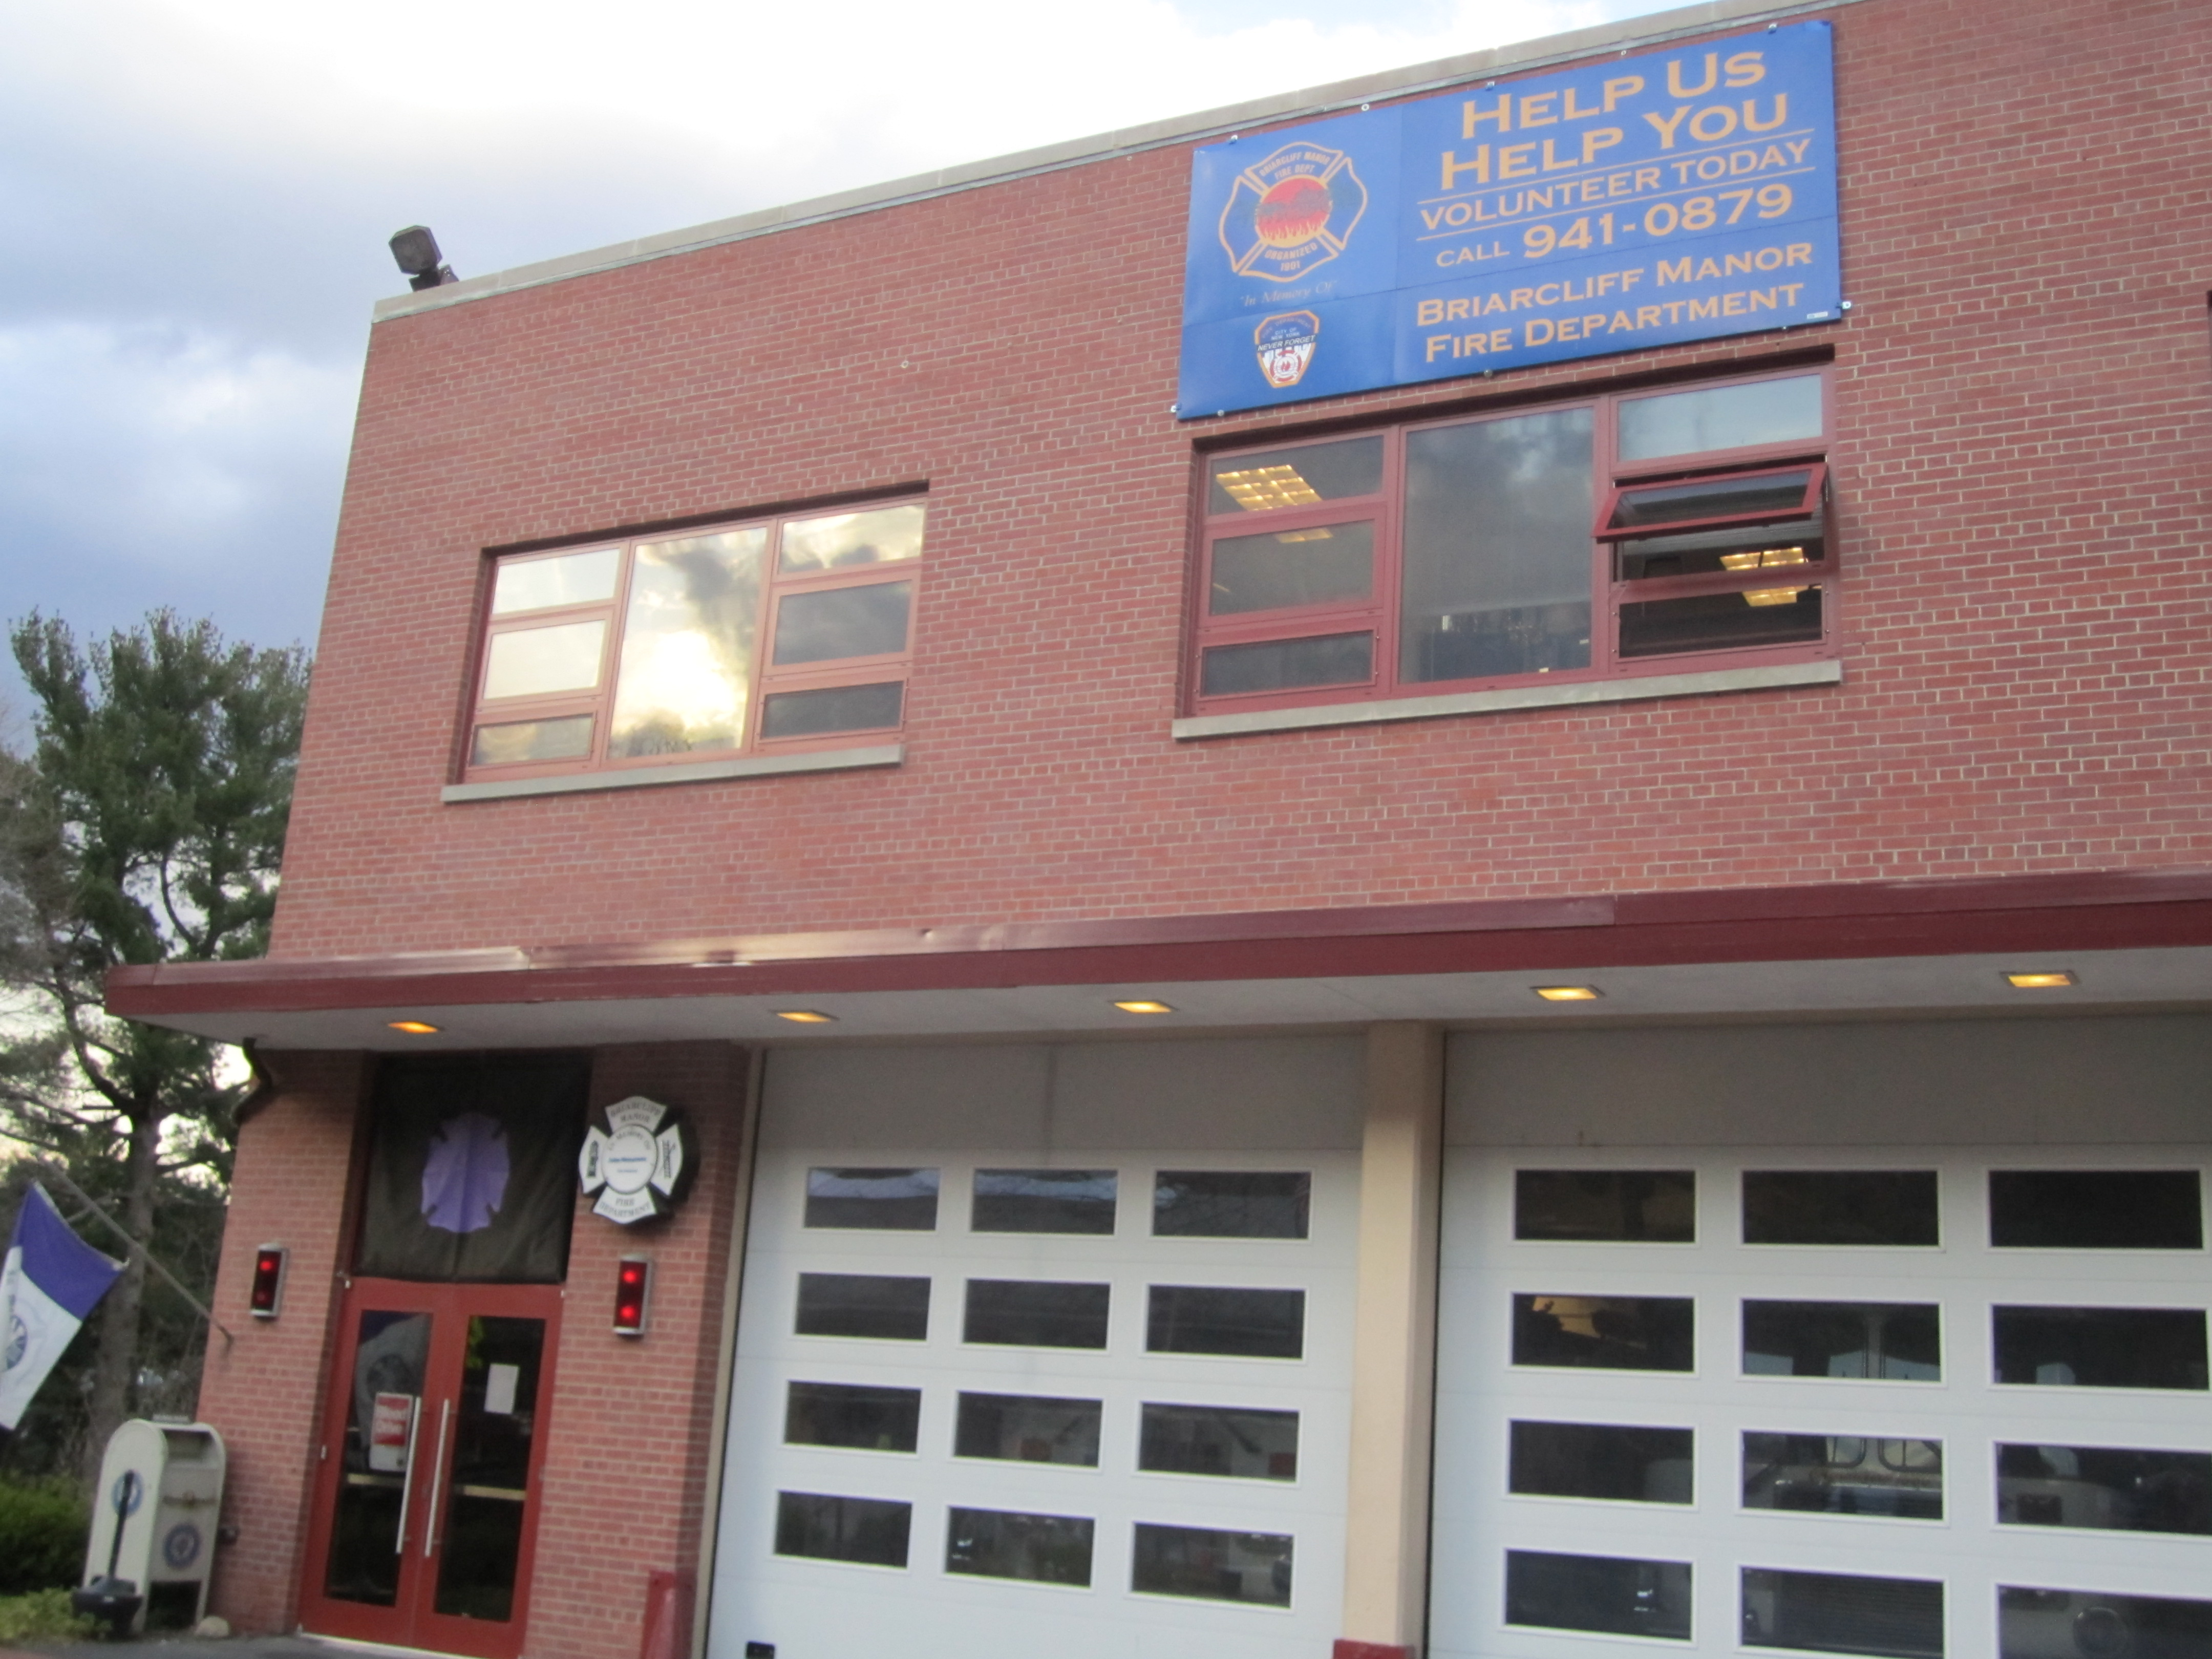 Briarcliff Manor Fire Department received a $167,451 grant from FEMA's Assistance to Firefighters Grant program.